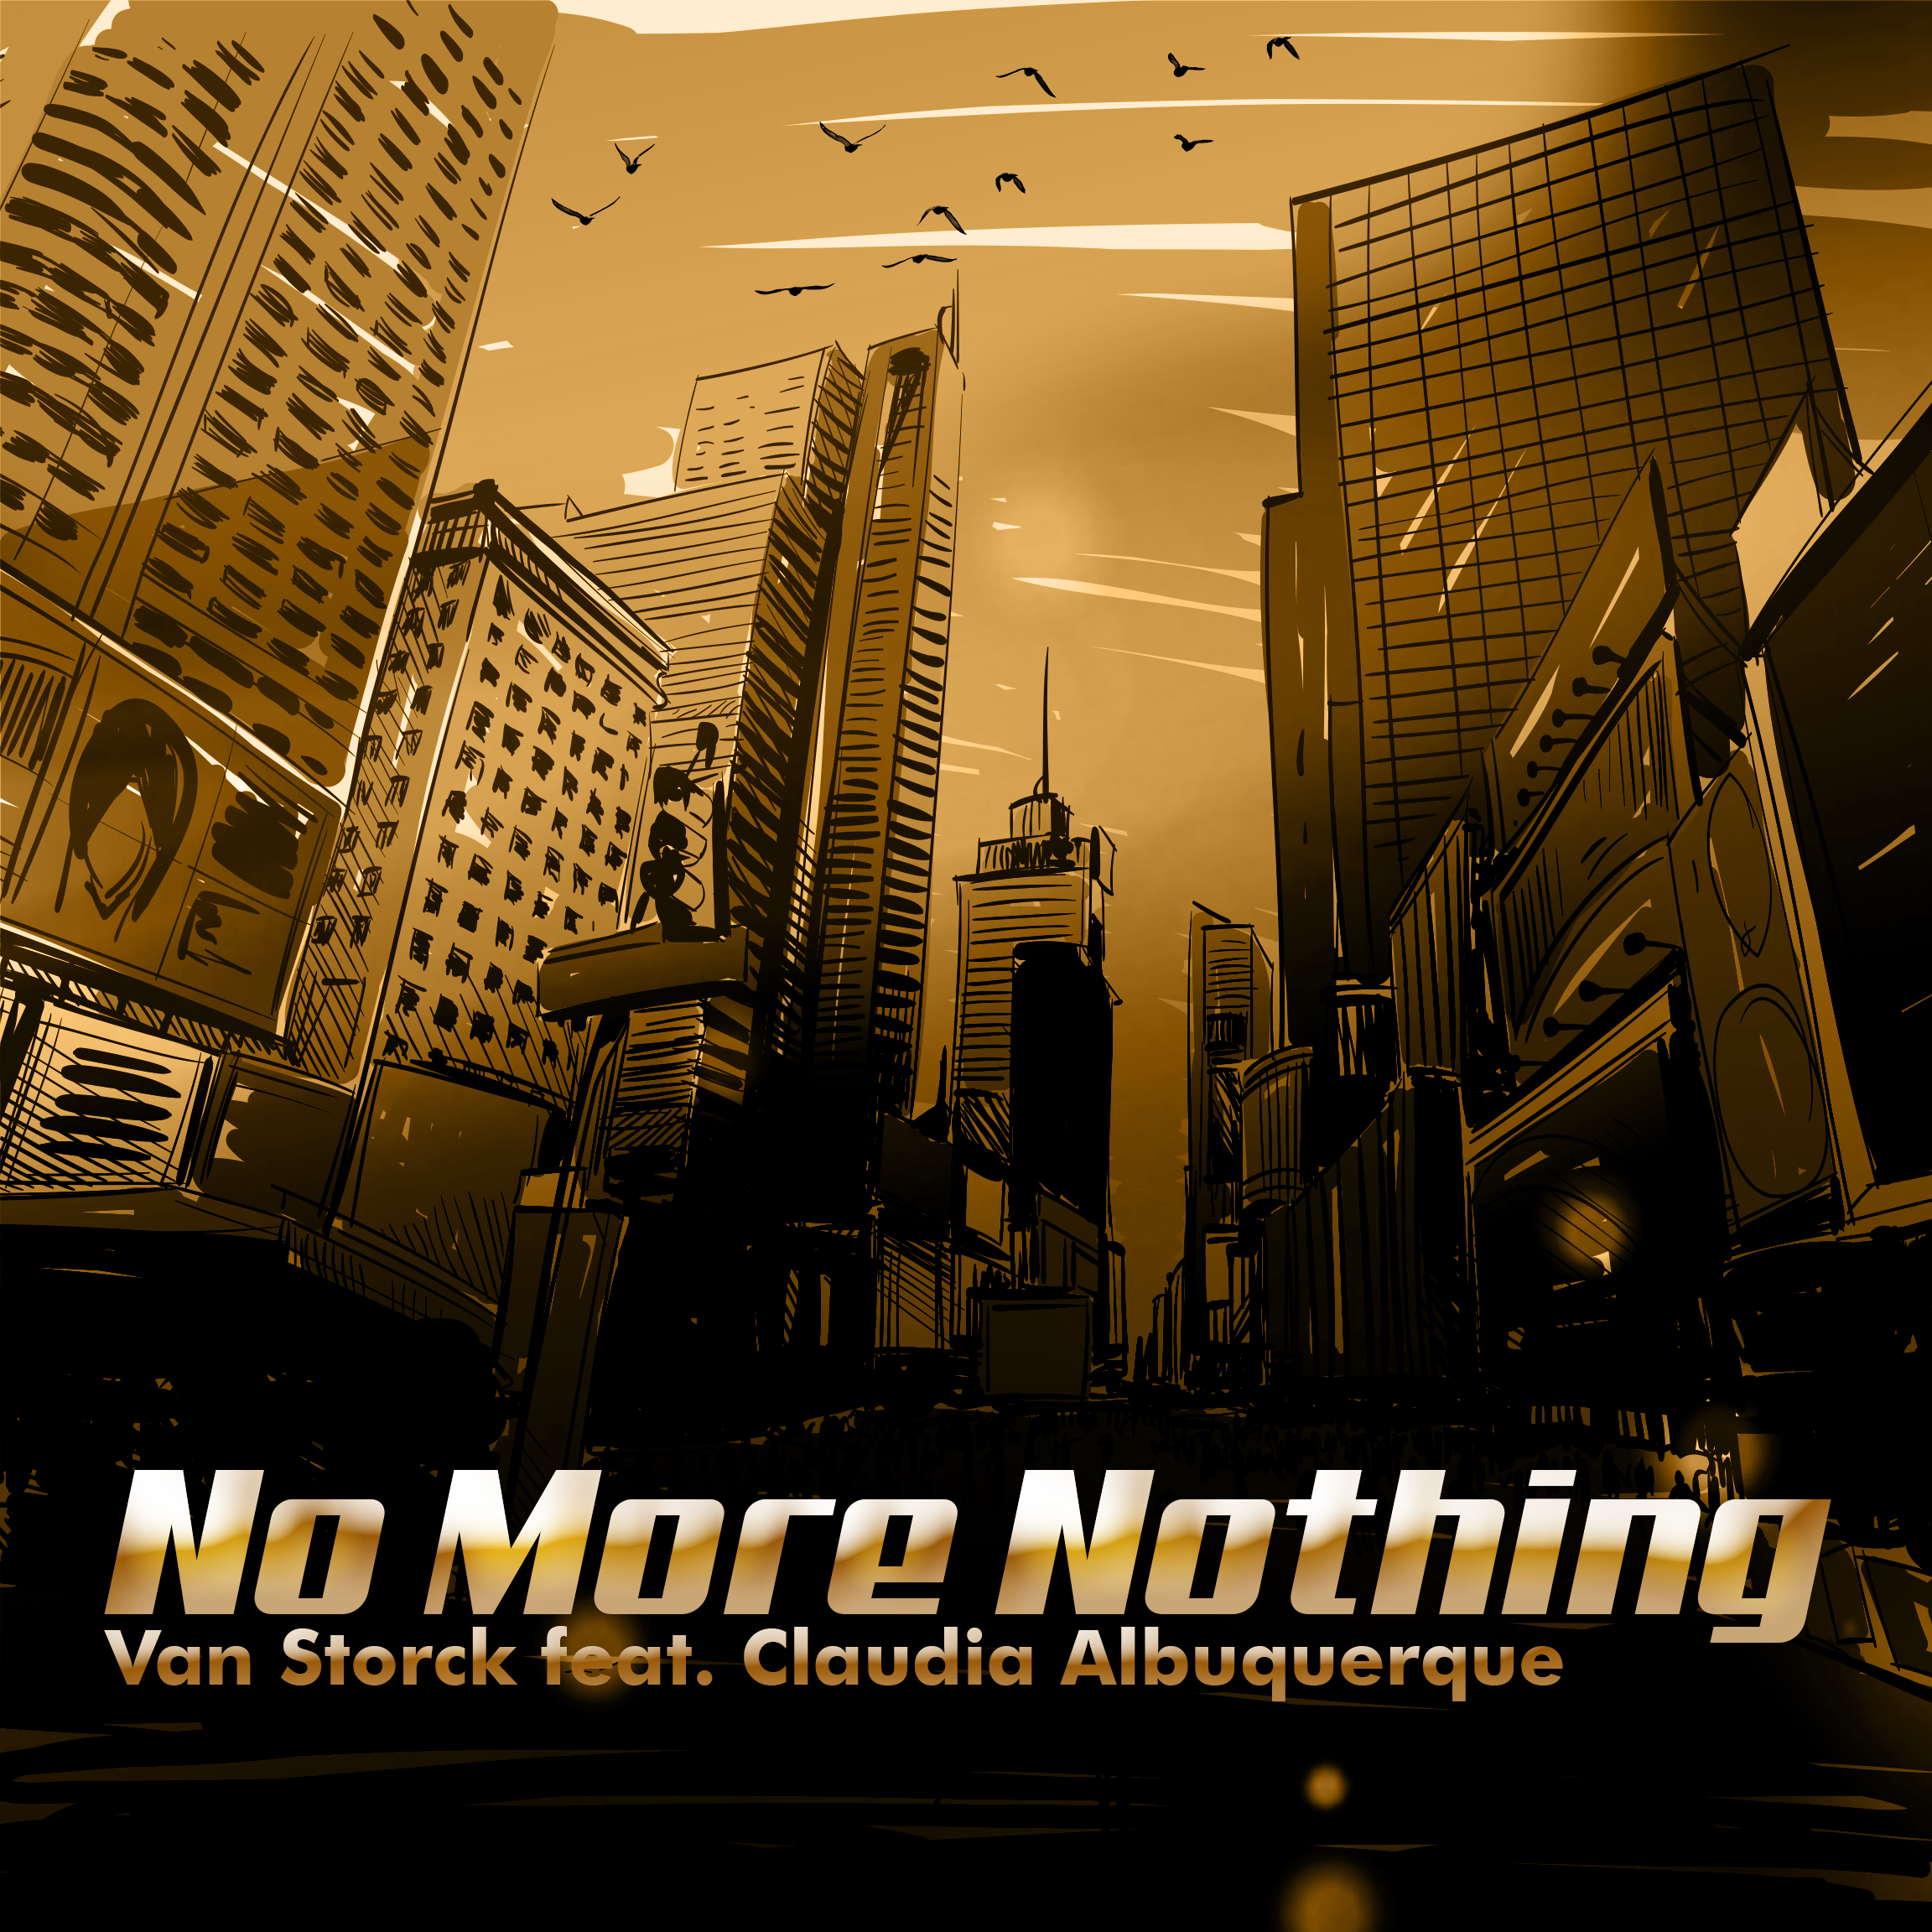 No More Nothing